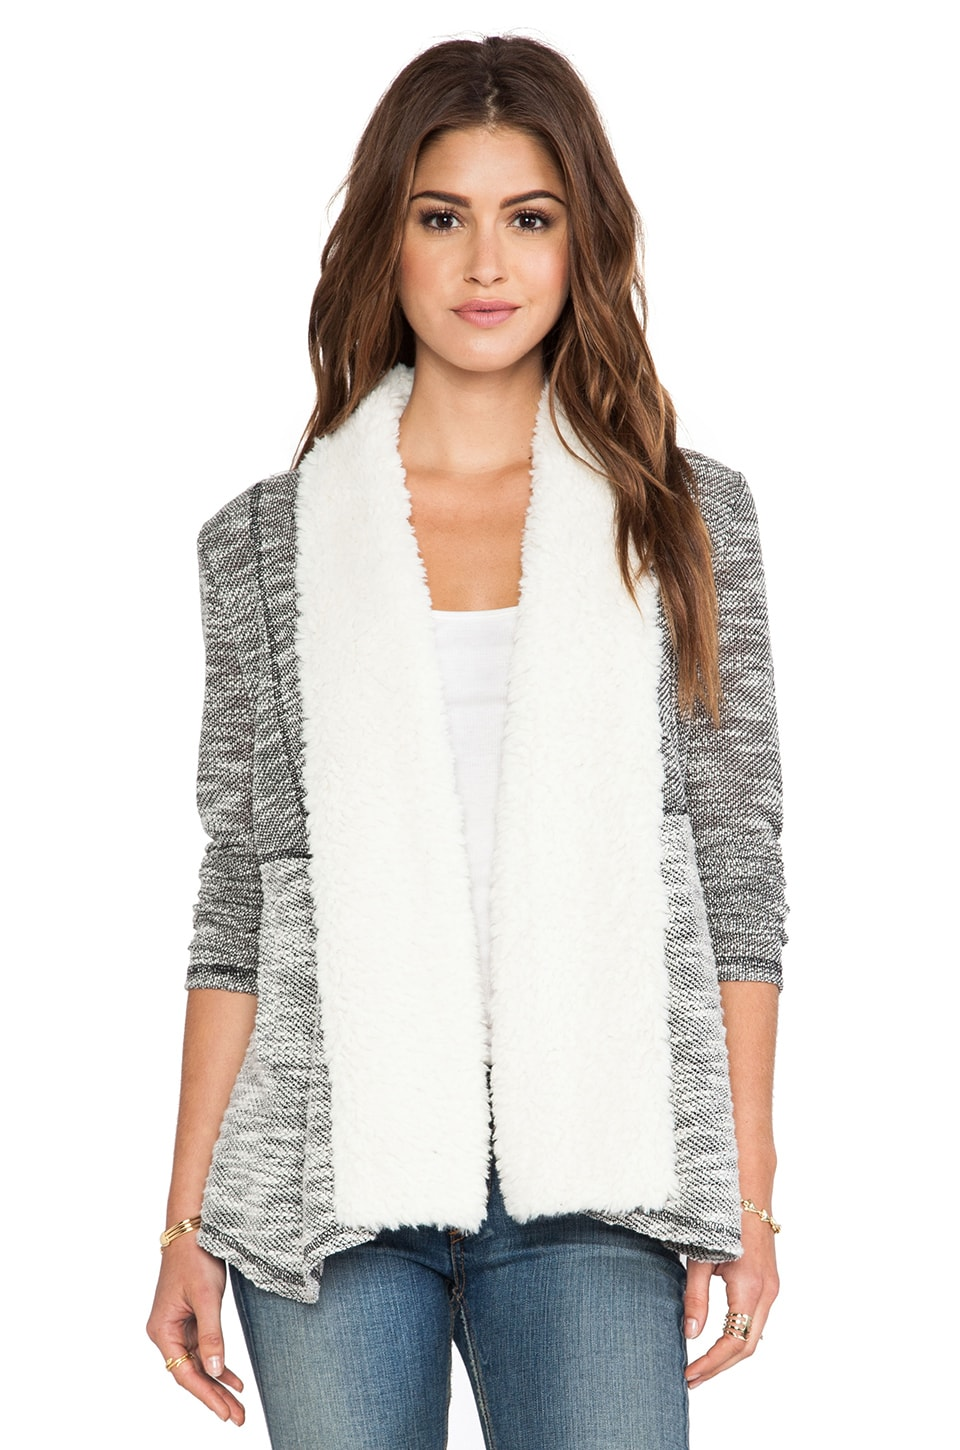 BB Dakota Applin Cardigan with Faux Fur trim in Black & Oatmeal